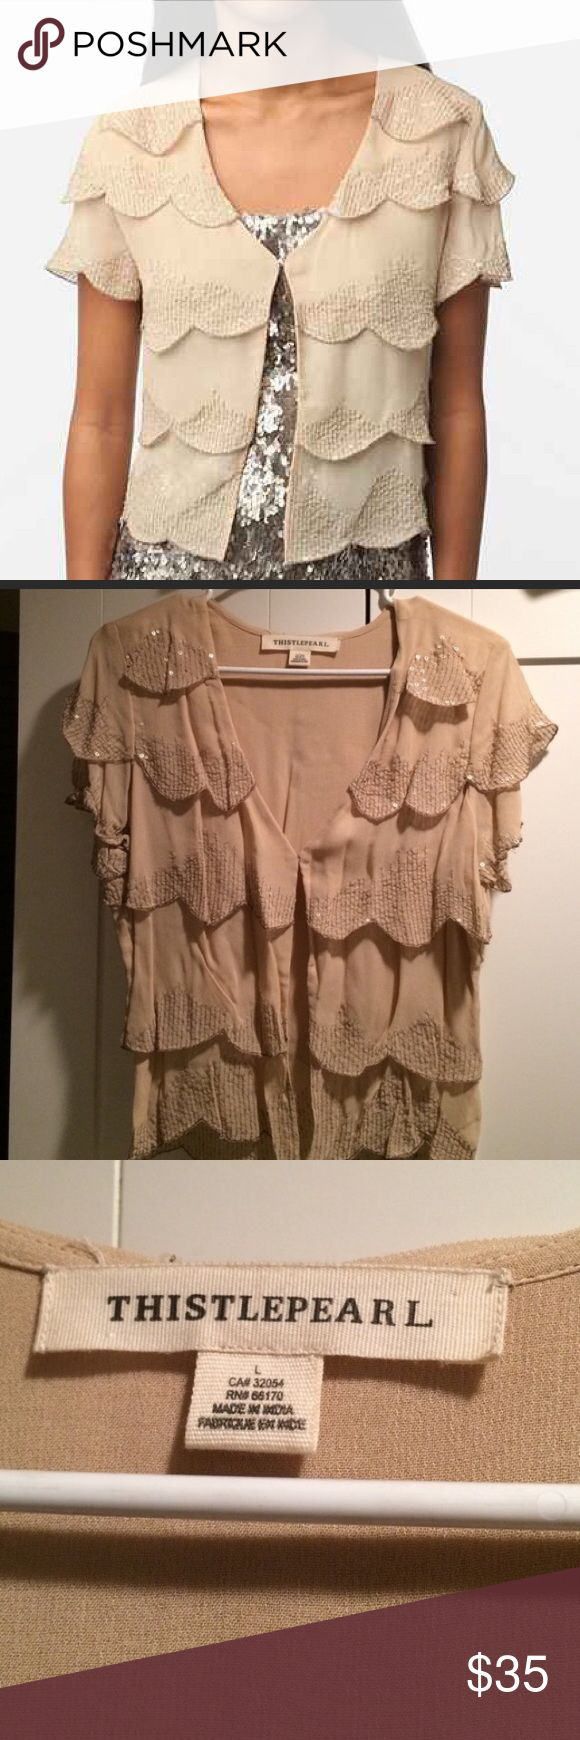 Urban outfitters top Thistlepearl Halcyon Cardigan - sold out online! Urban Outfitters Tops Blouses